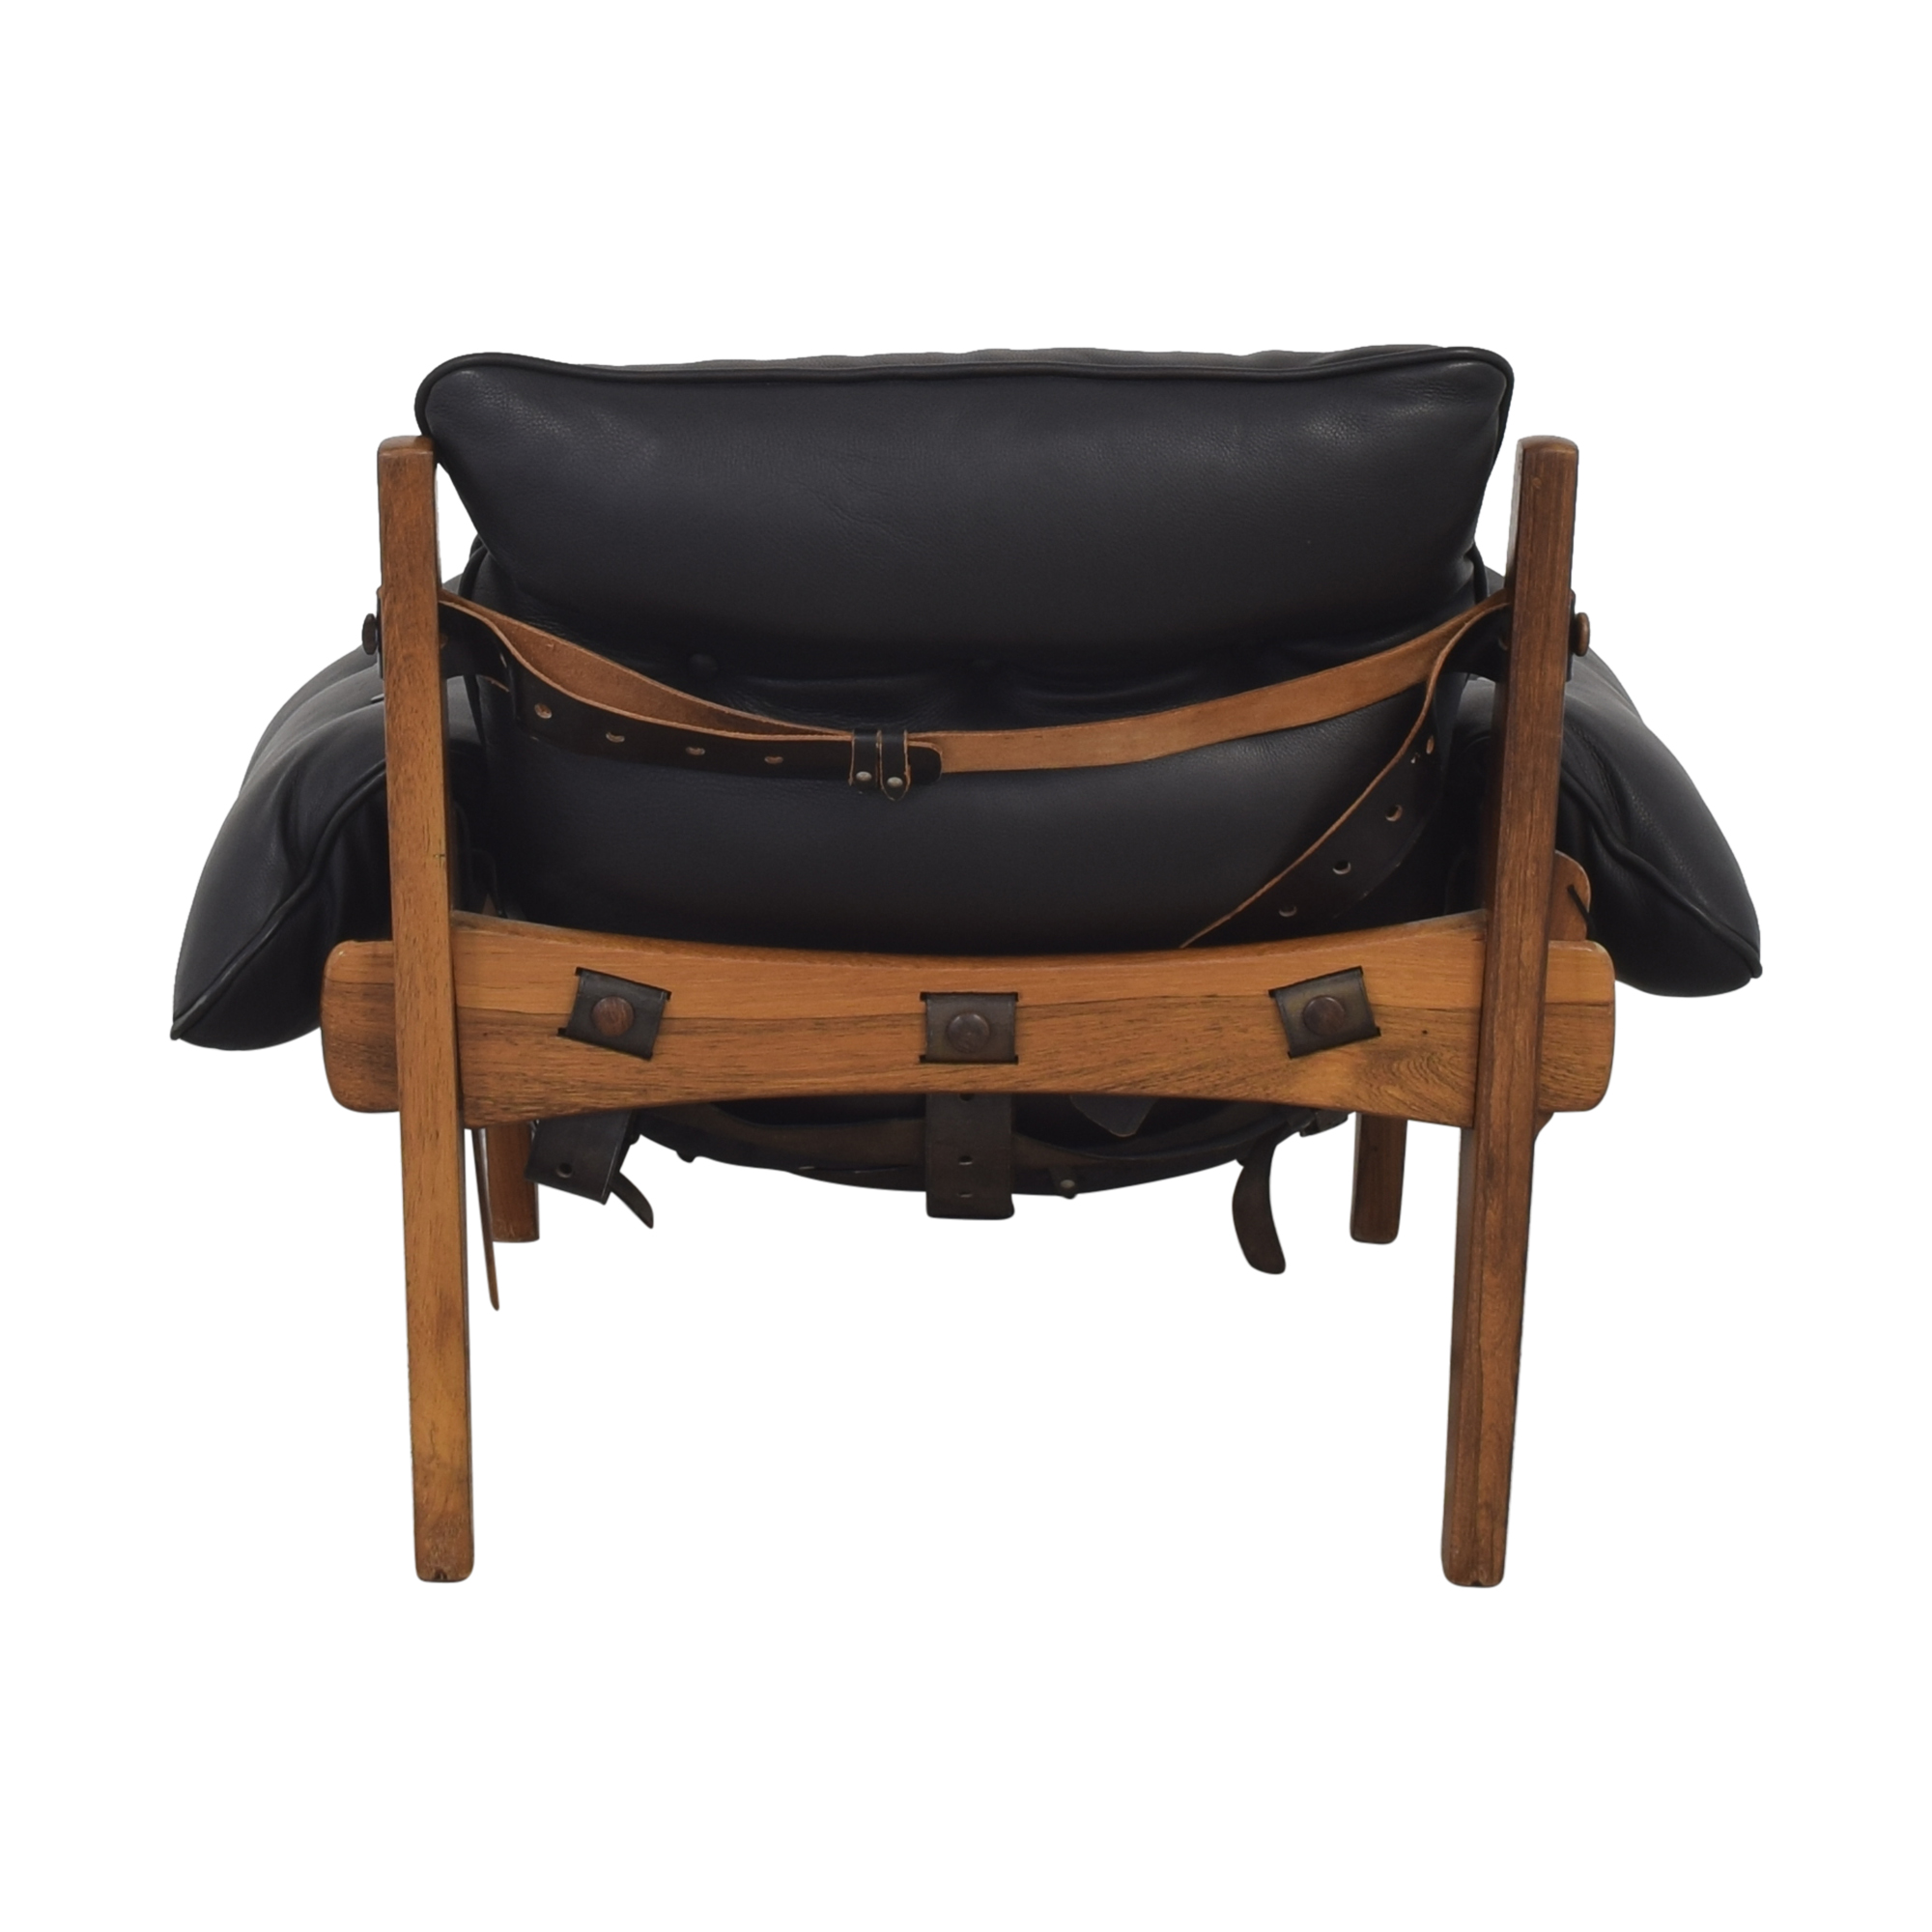 Sergio Rodrigues Sergio Rodrigues Mischievous Chair and Ottoman discount